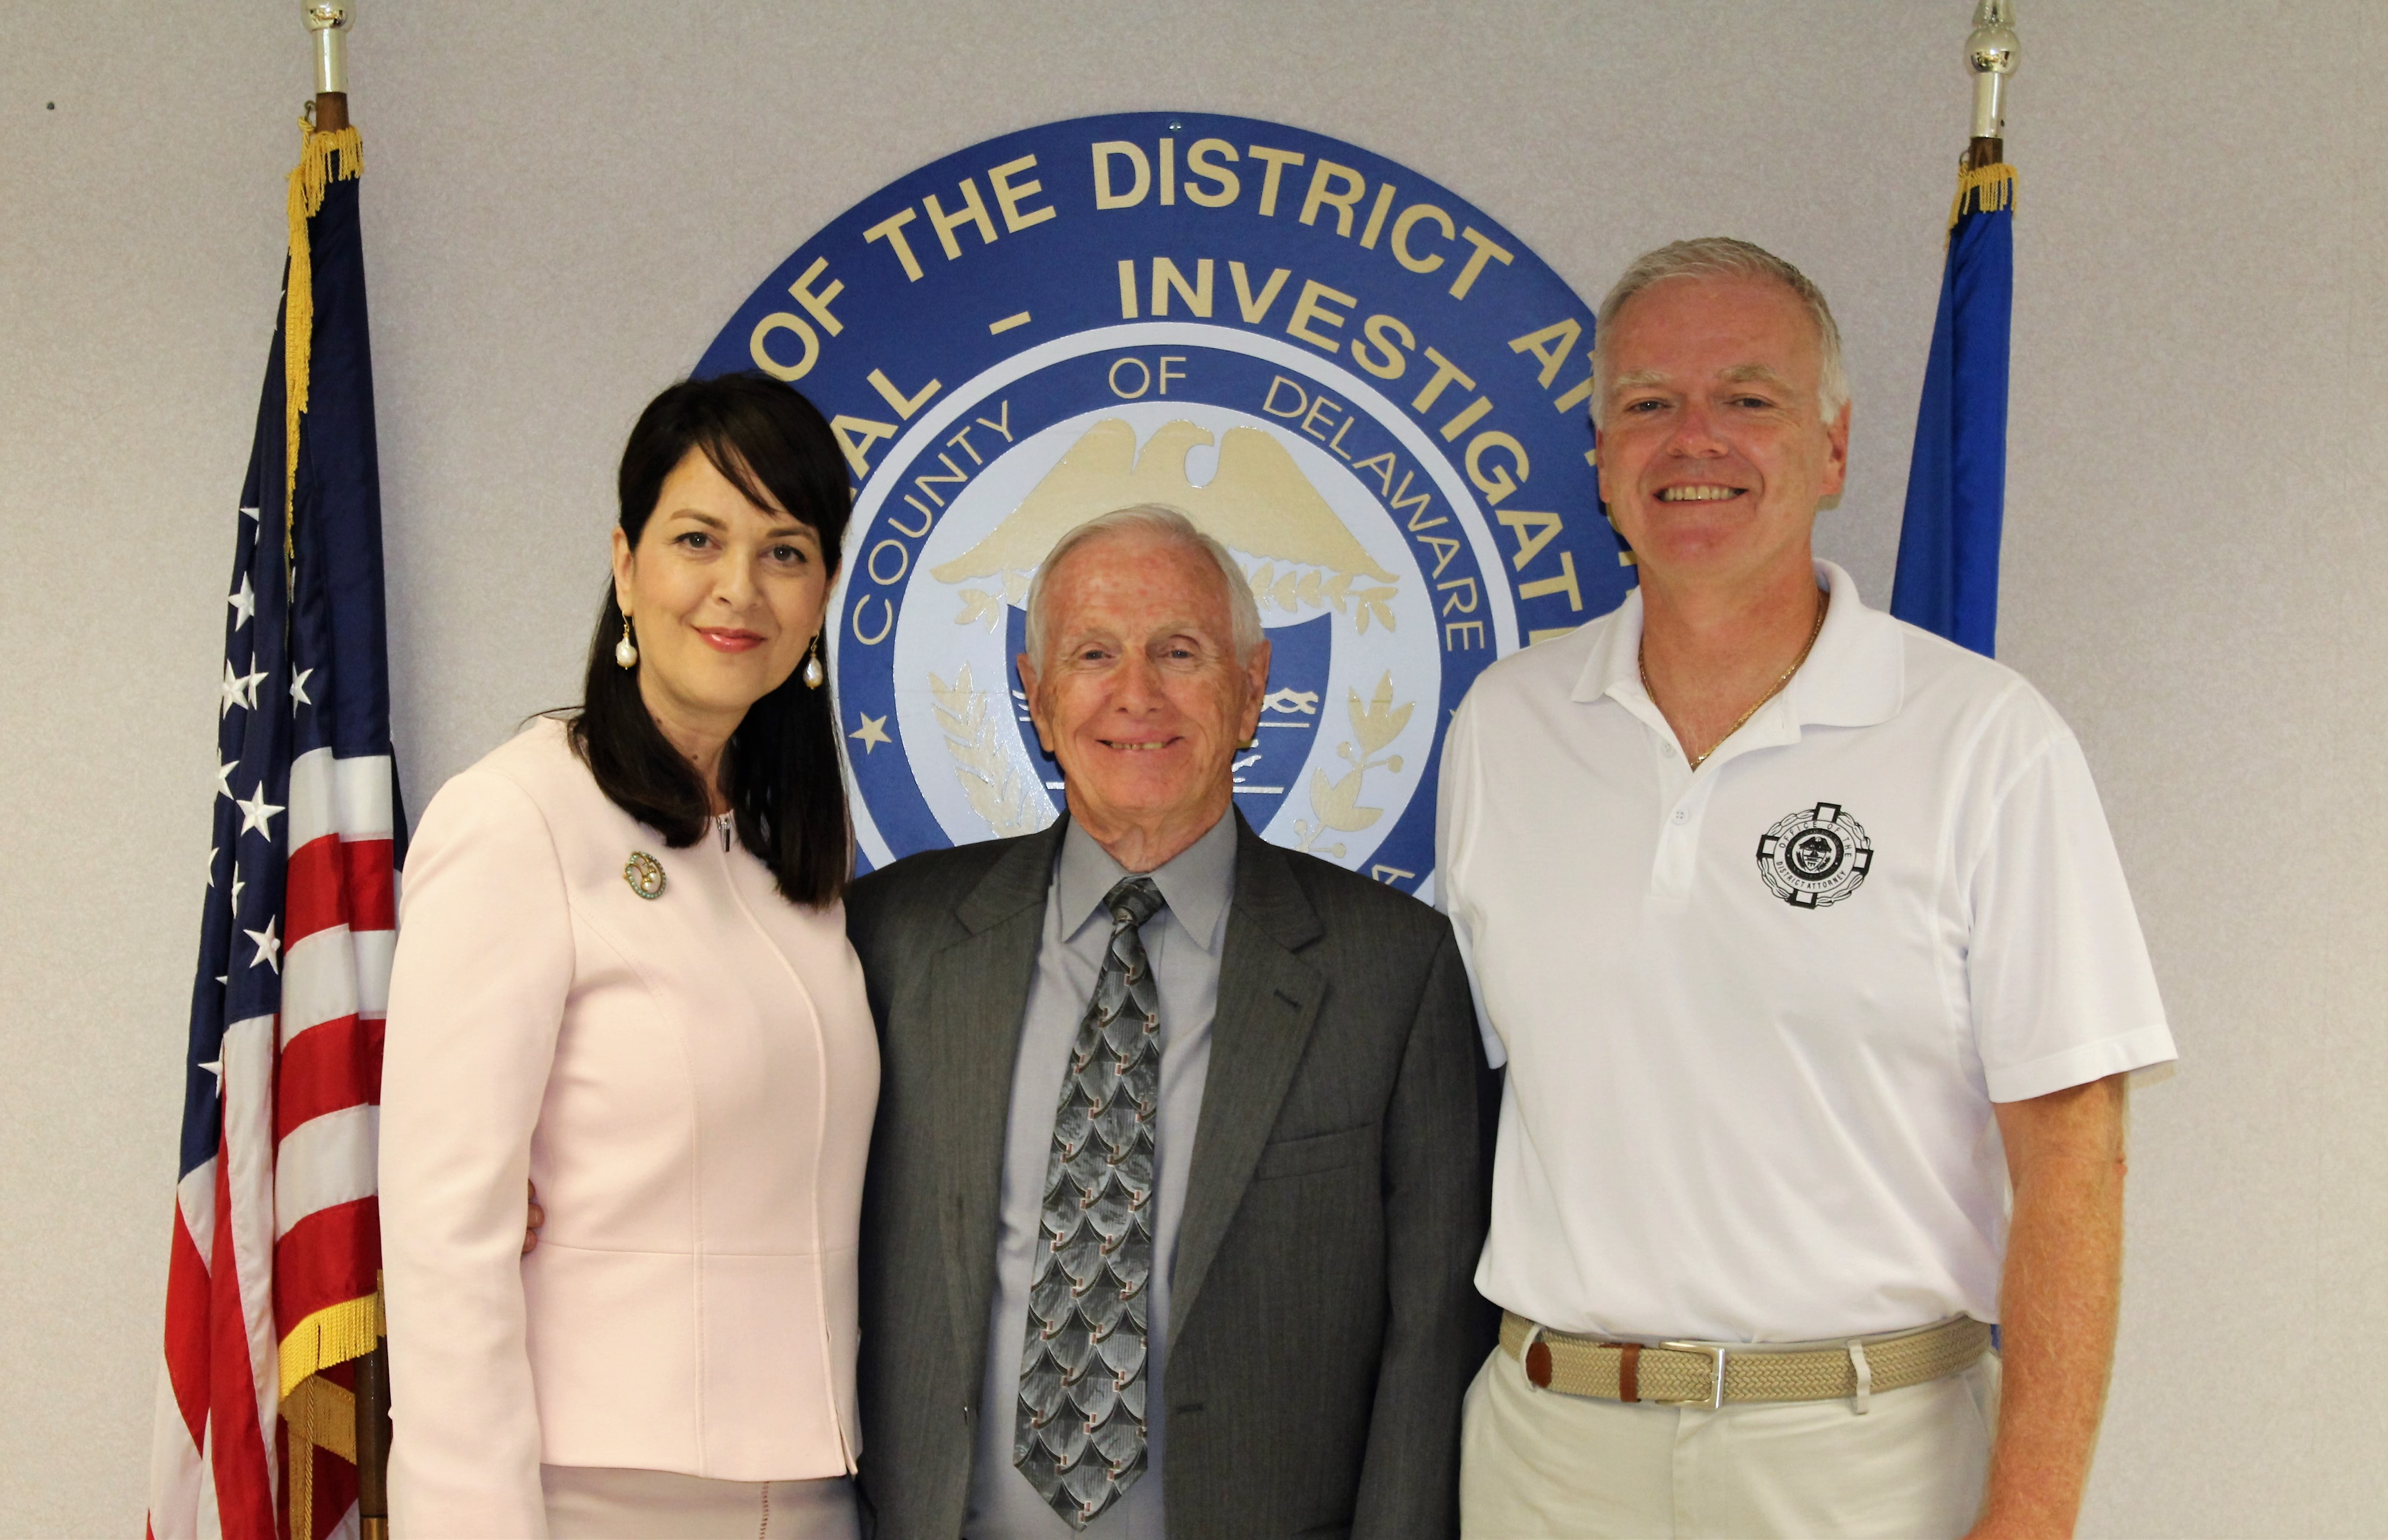 Photo caption: On August 31, 2018, CID detectives and staff recognized Sergeant Jack Kelly for his longtime service and bid him farewell on his last day. Pictured from left, District Attorney Katayoun M. Copeland, Sergeant Jack Kelly, and CID Chief Joseph A. Ryan.